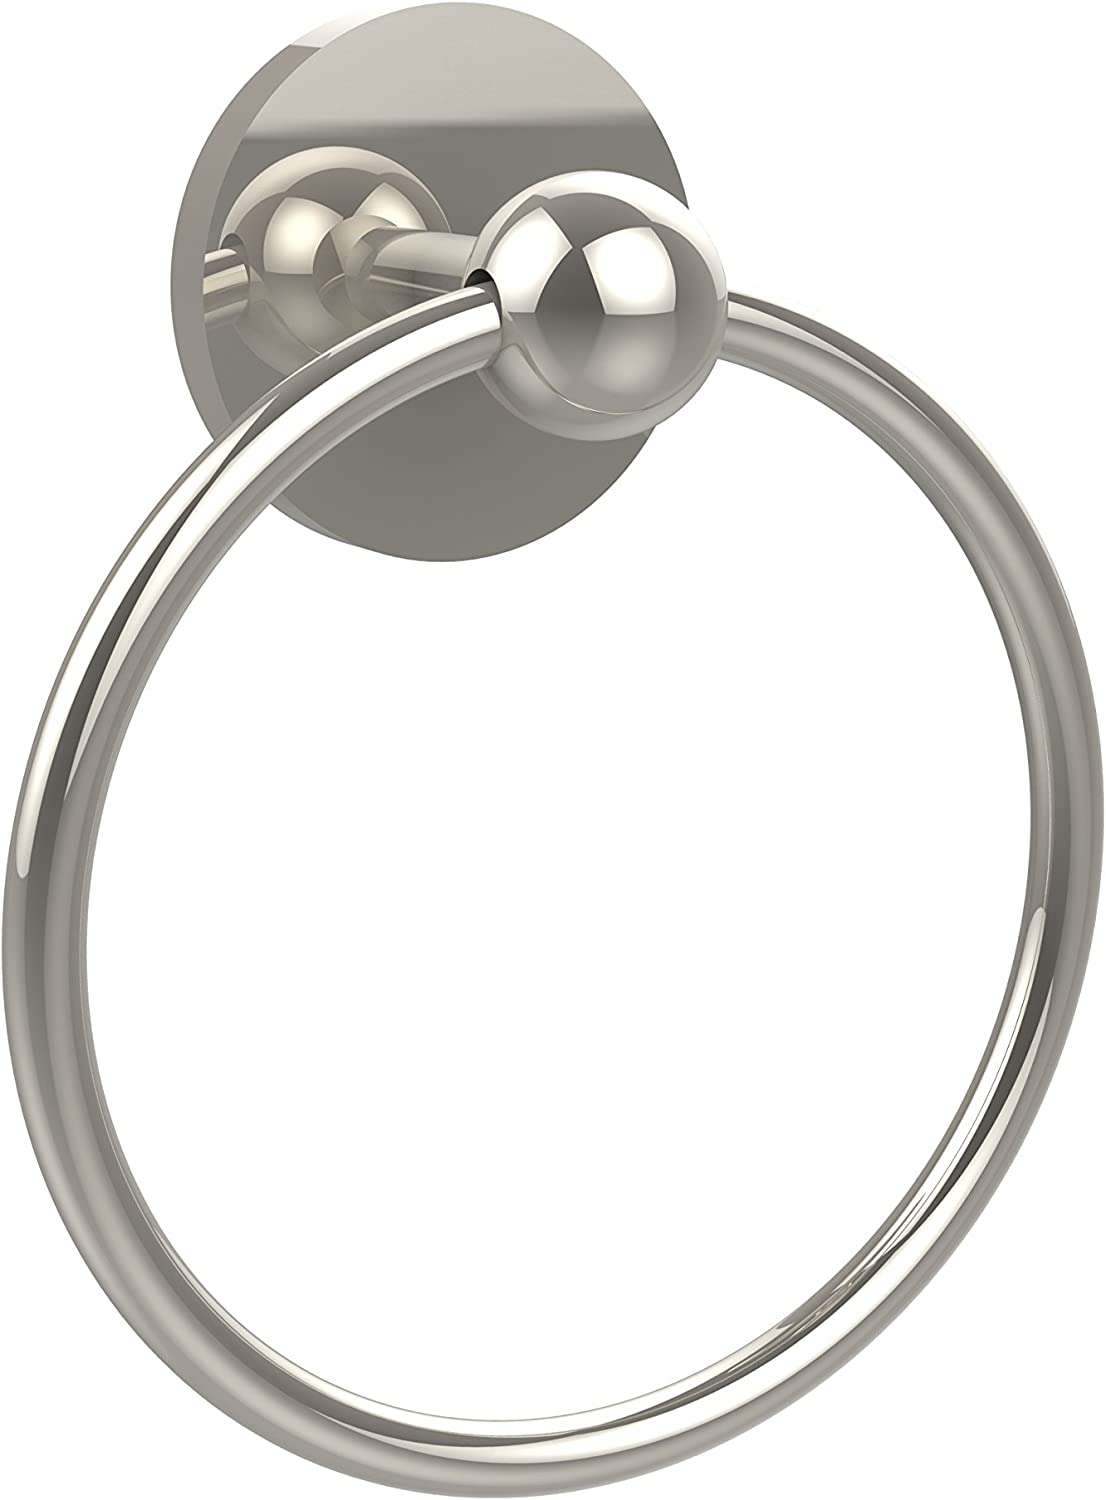 Allied Brass P1016-PNI 6-Inch Towel Ring, Polished Nickel